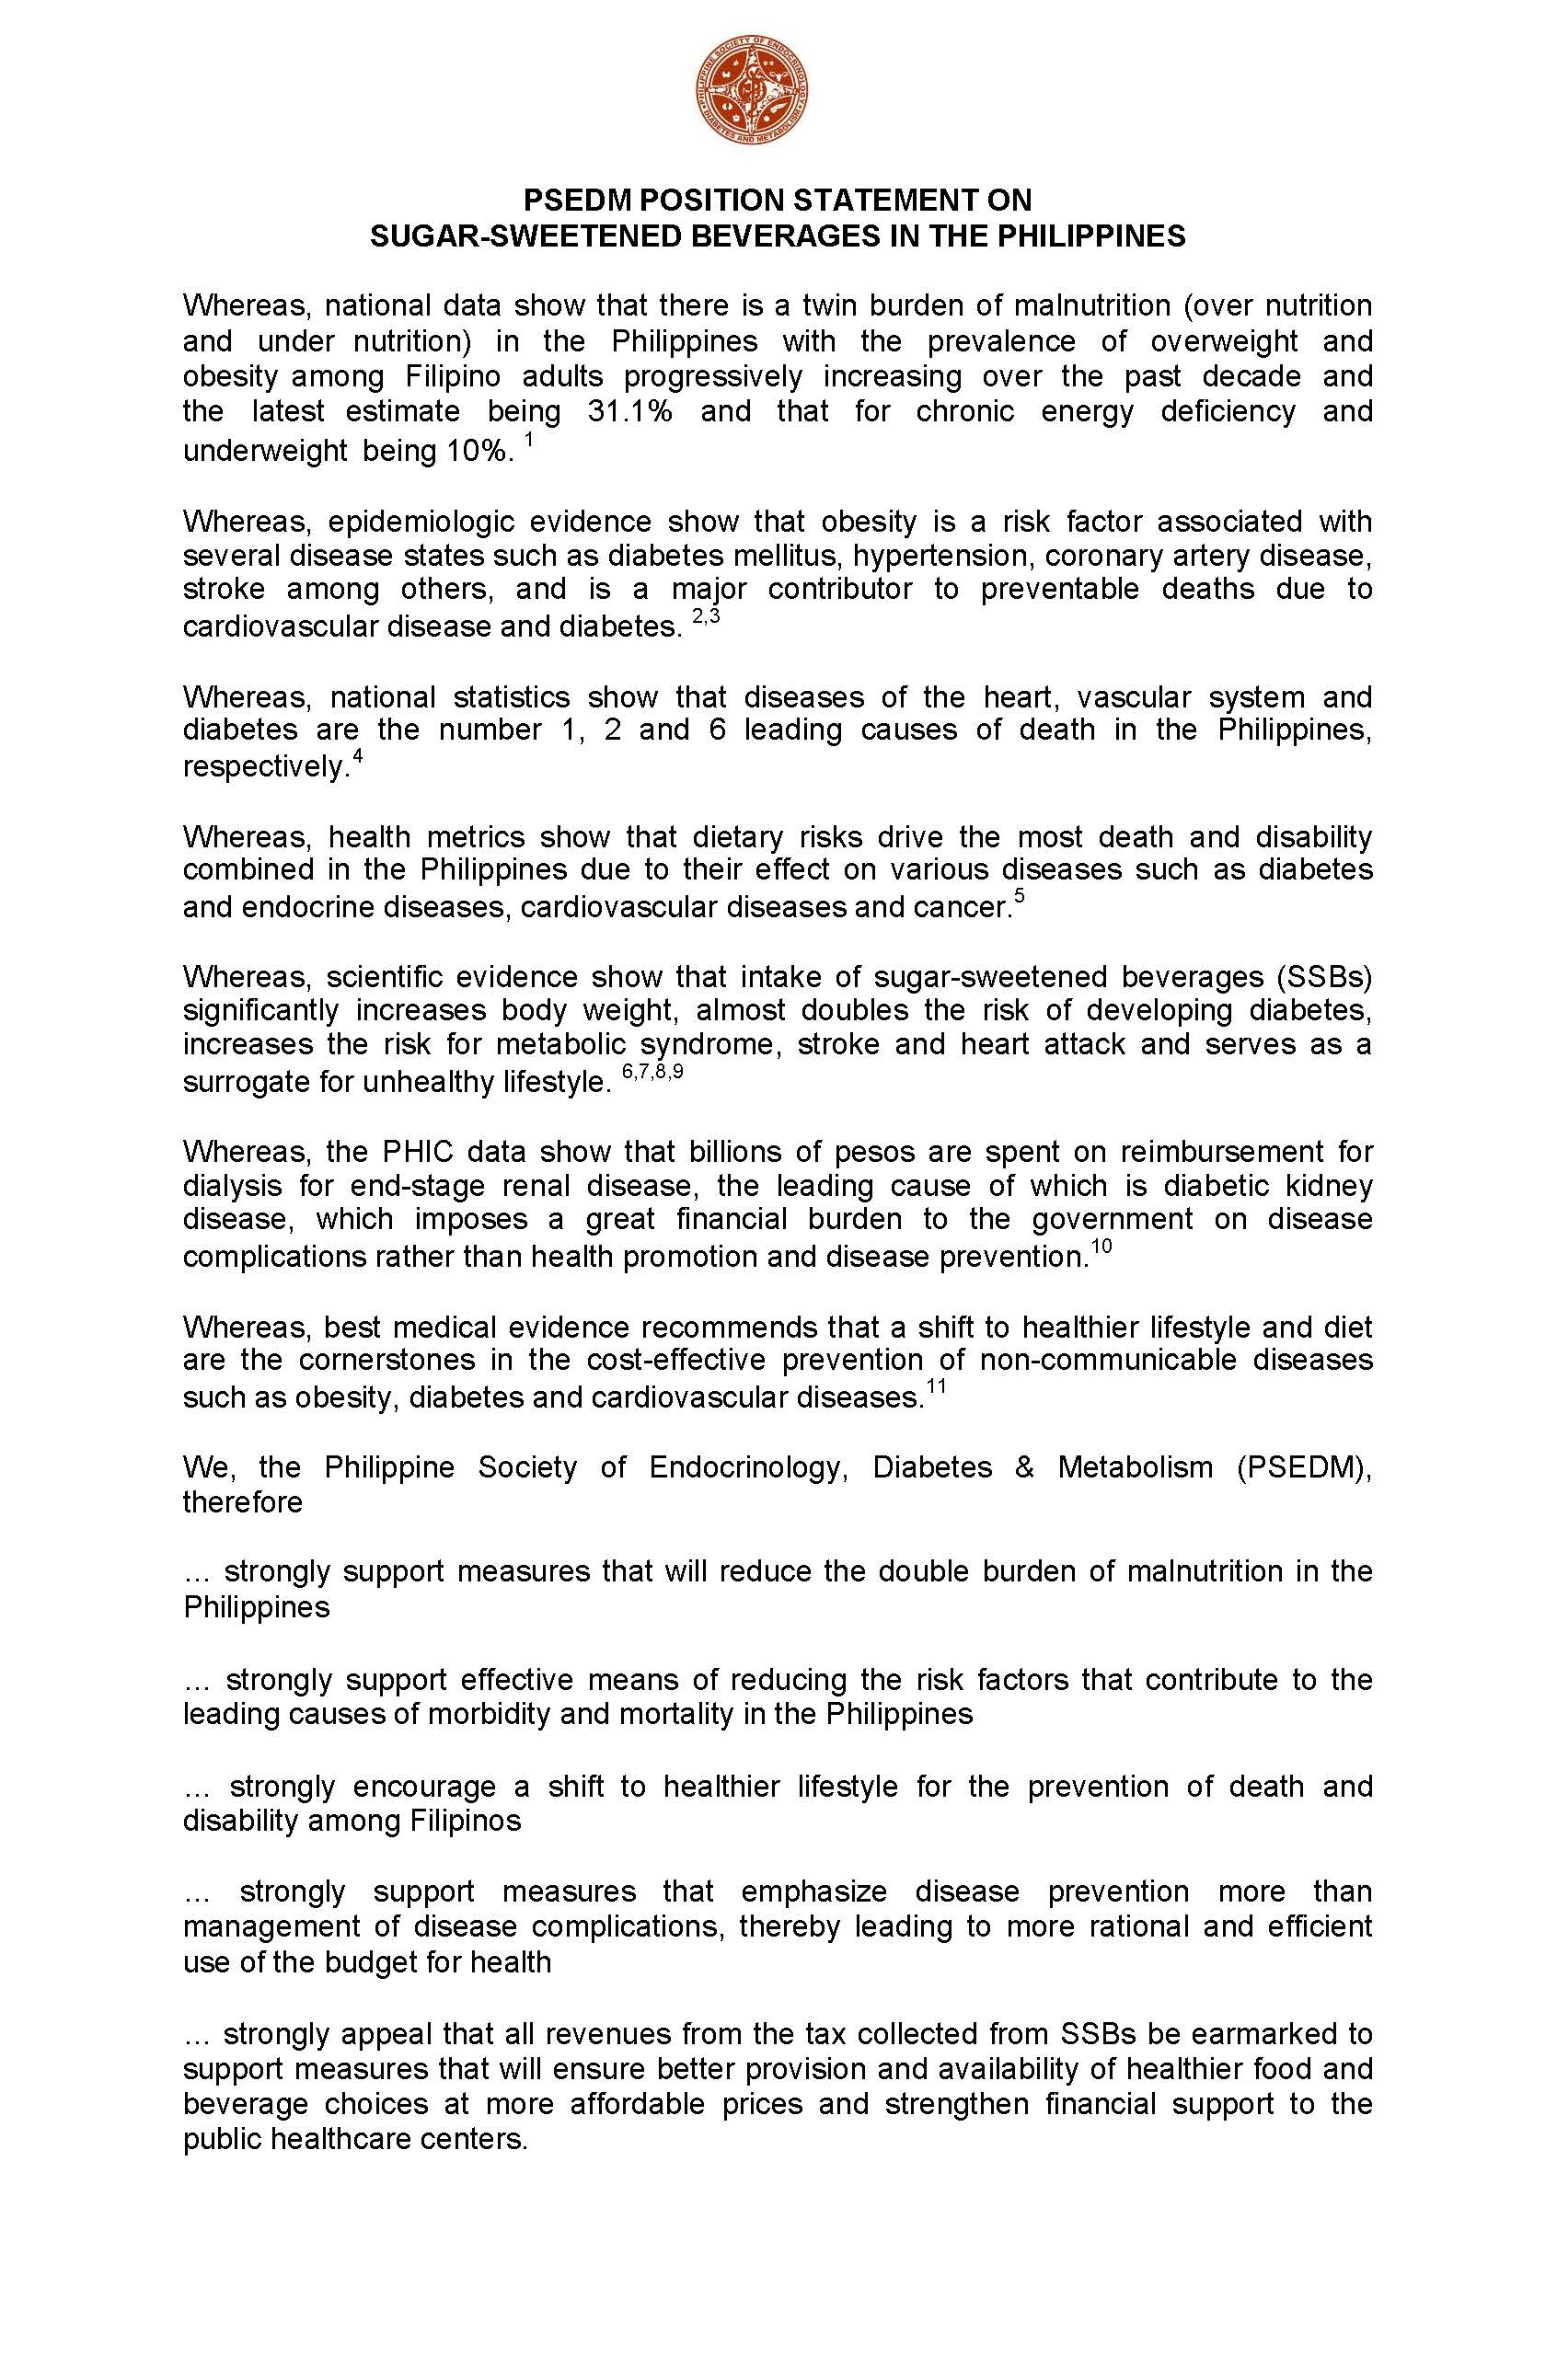 20171016 PSEDM FINAL Position Statement on SSB Page 1